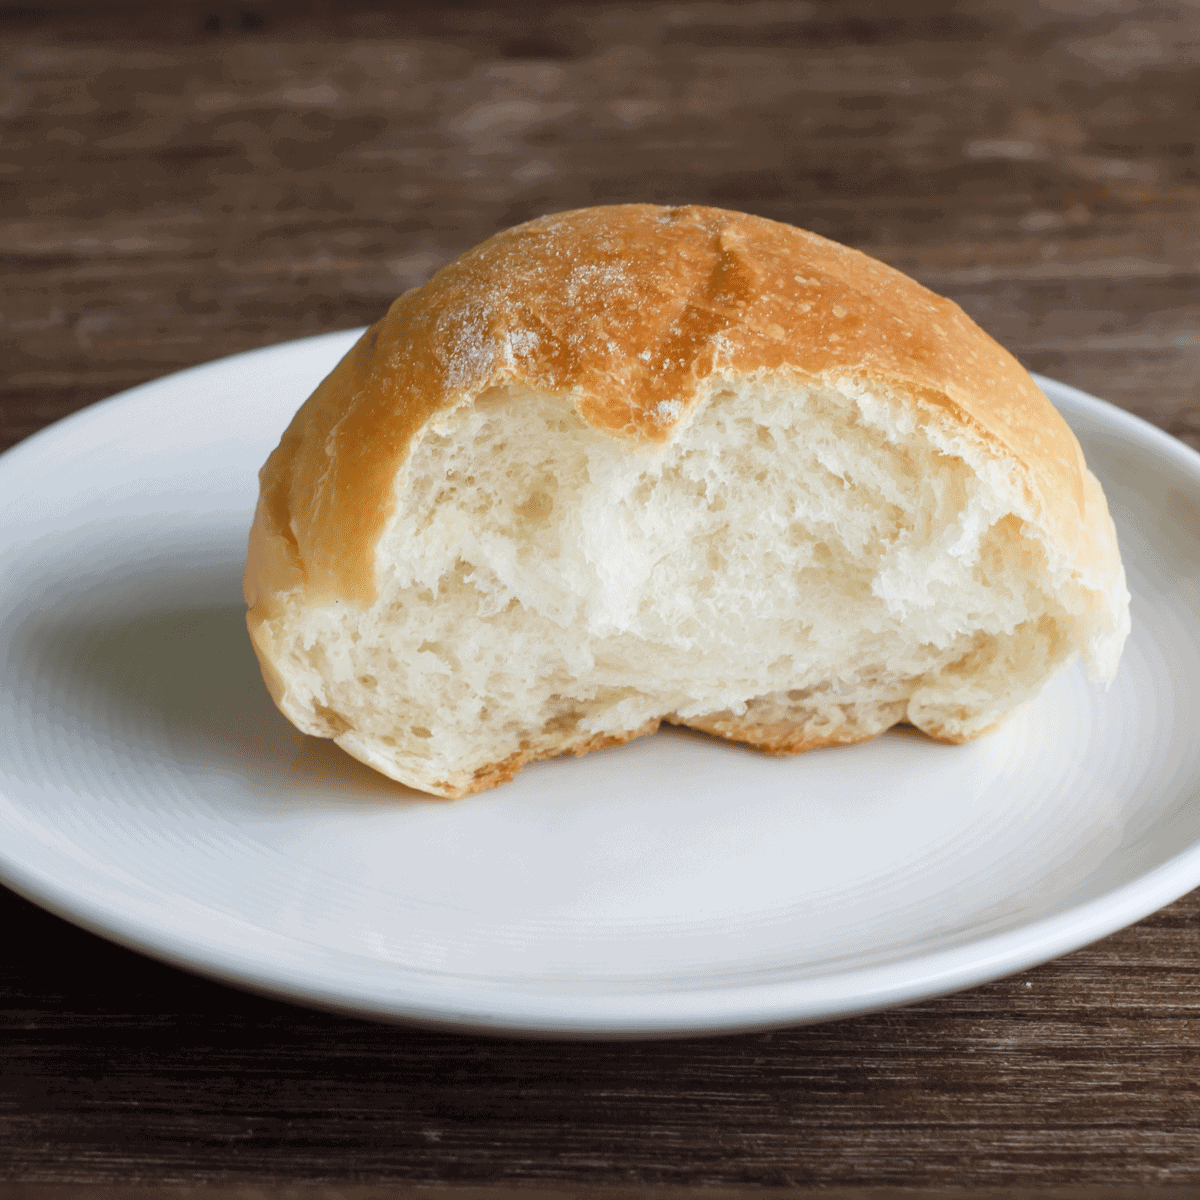 A fresh homemade dinner bun that is so soft and tender that is torn in half, on a white dinner plate